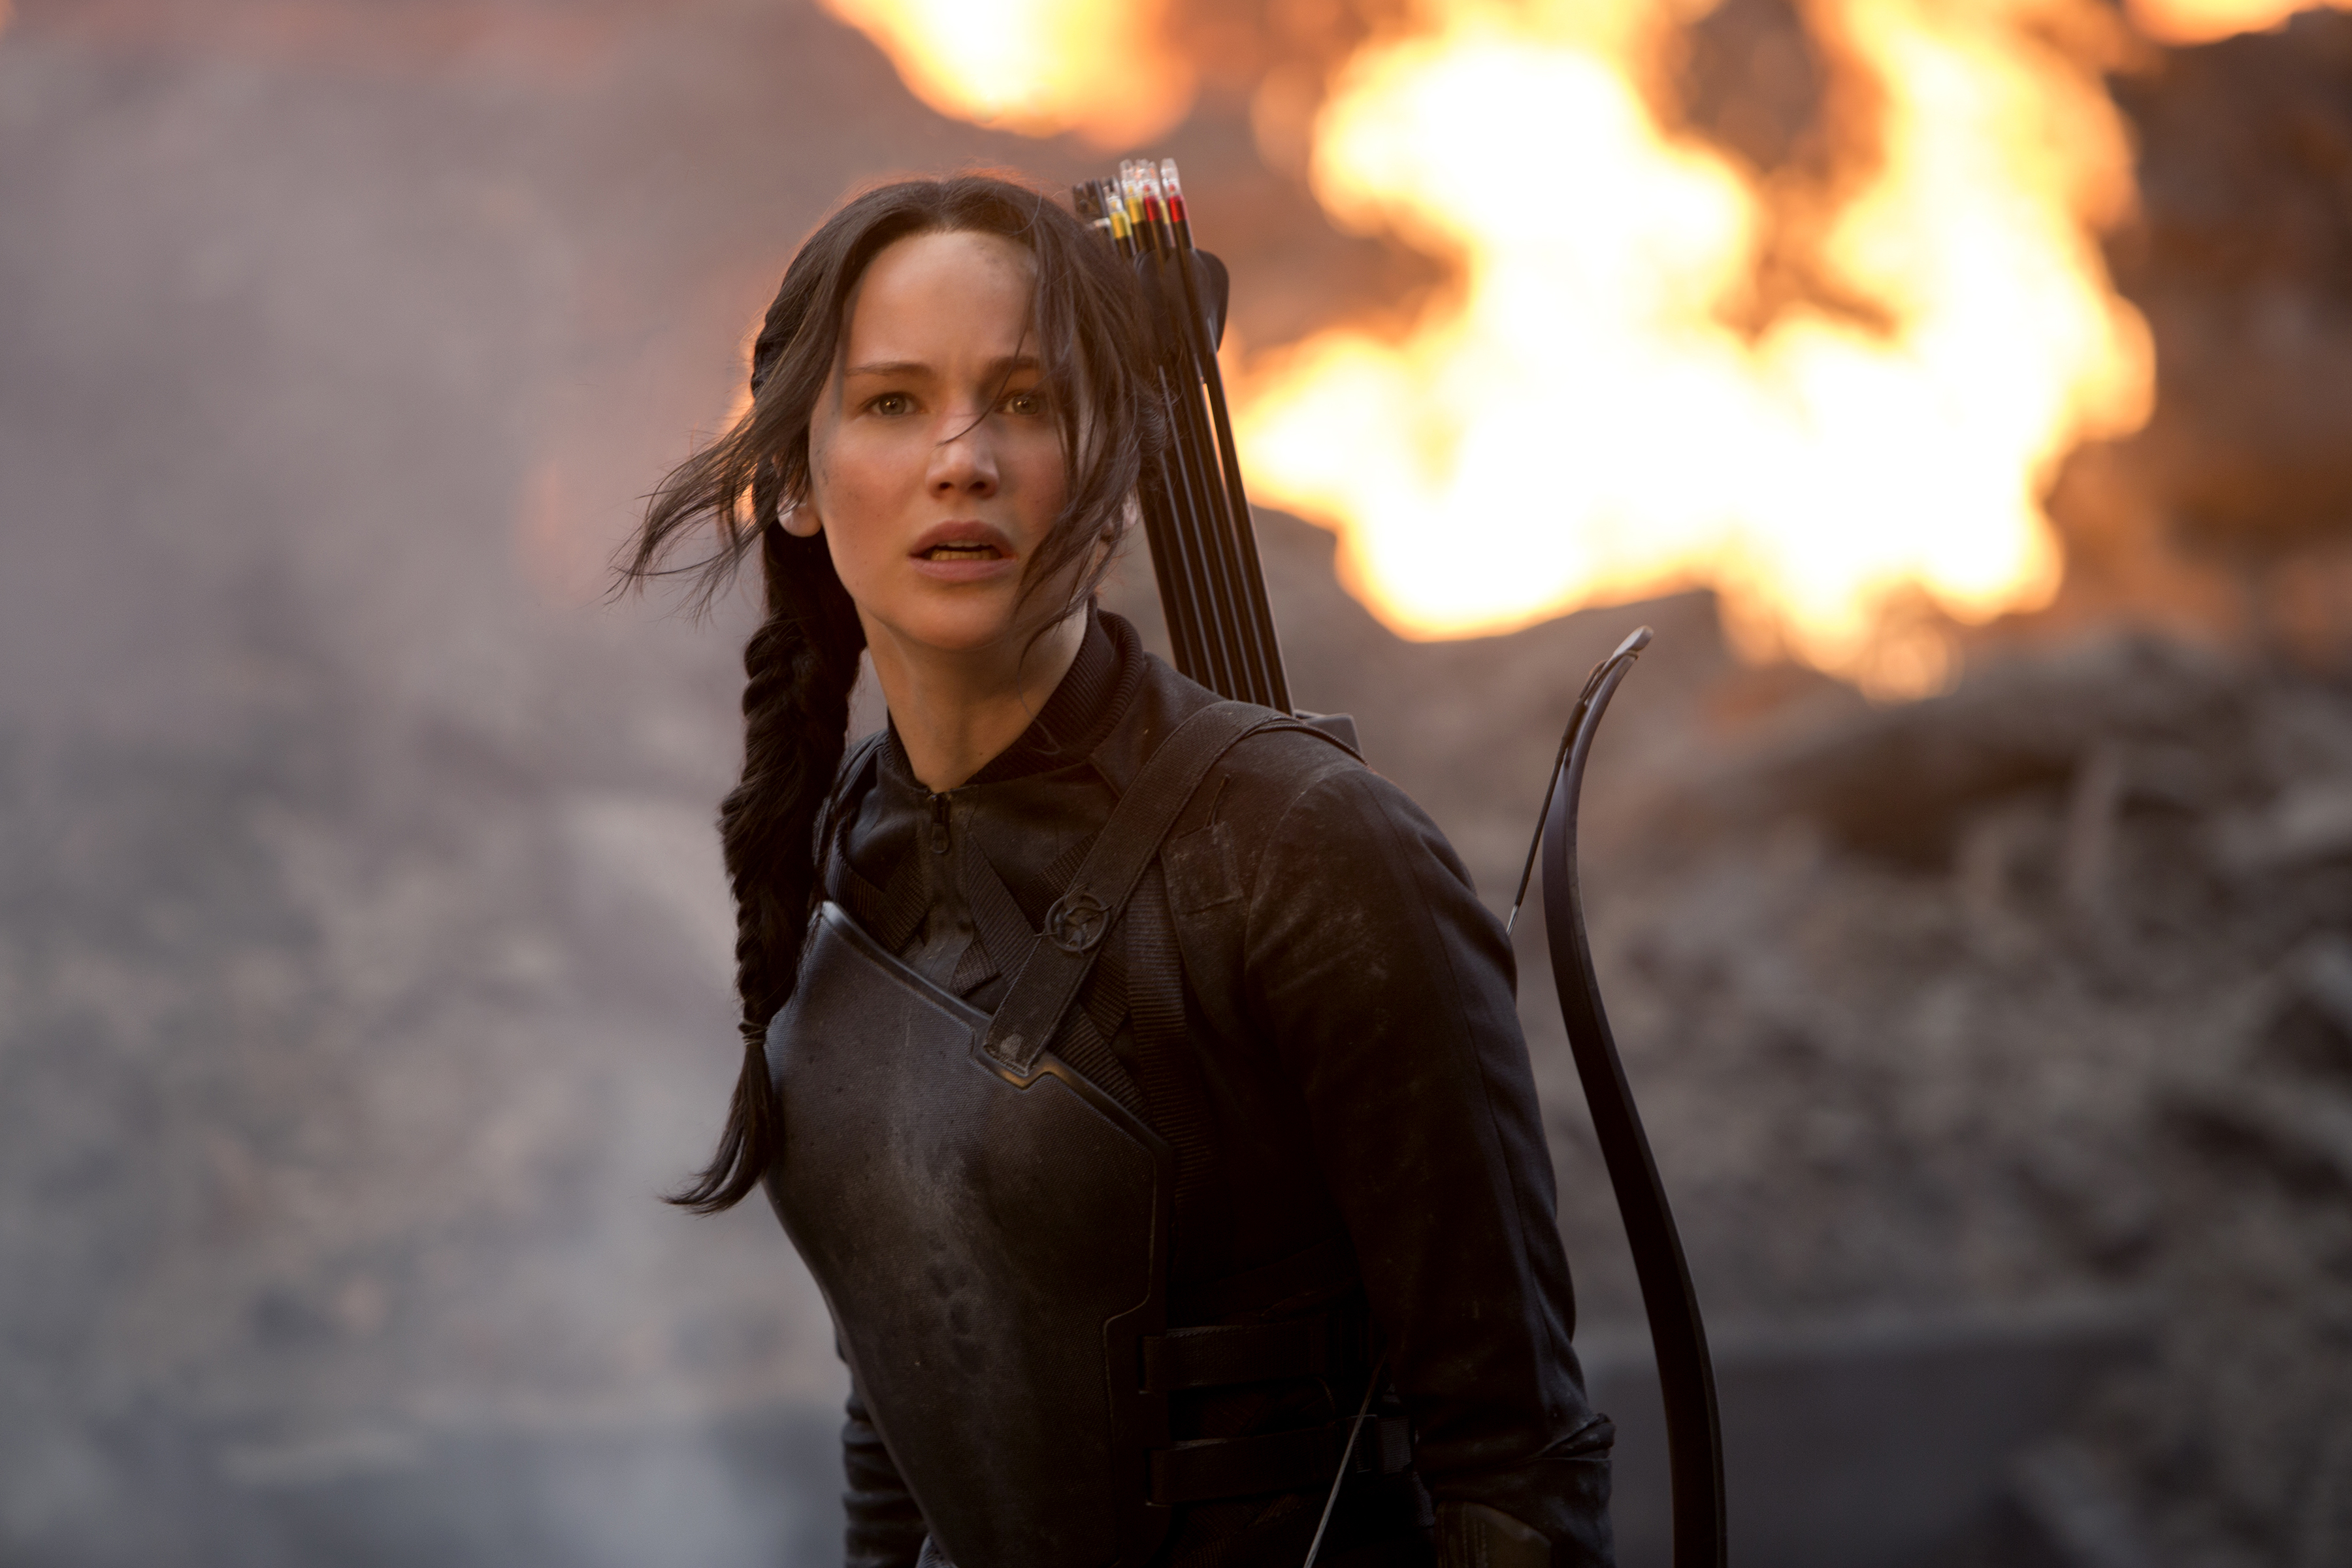 Jo Willems Brings Naturalism and Honesty to Blockbuster Hunger Games Sequels